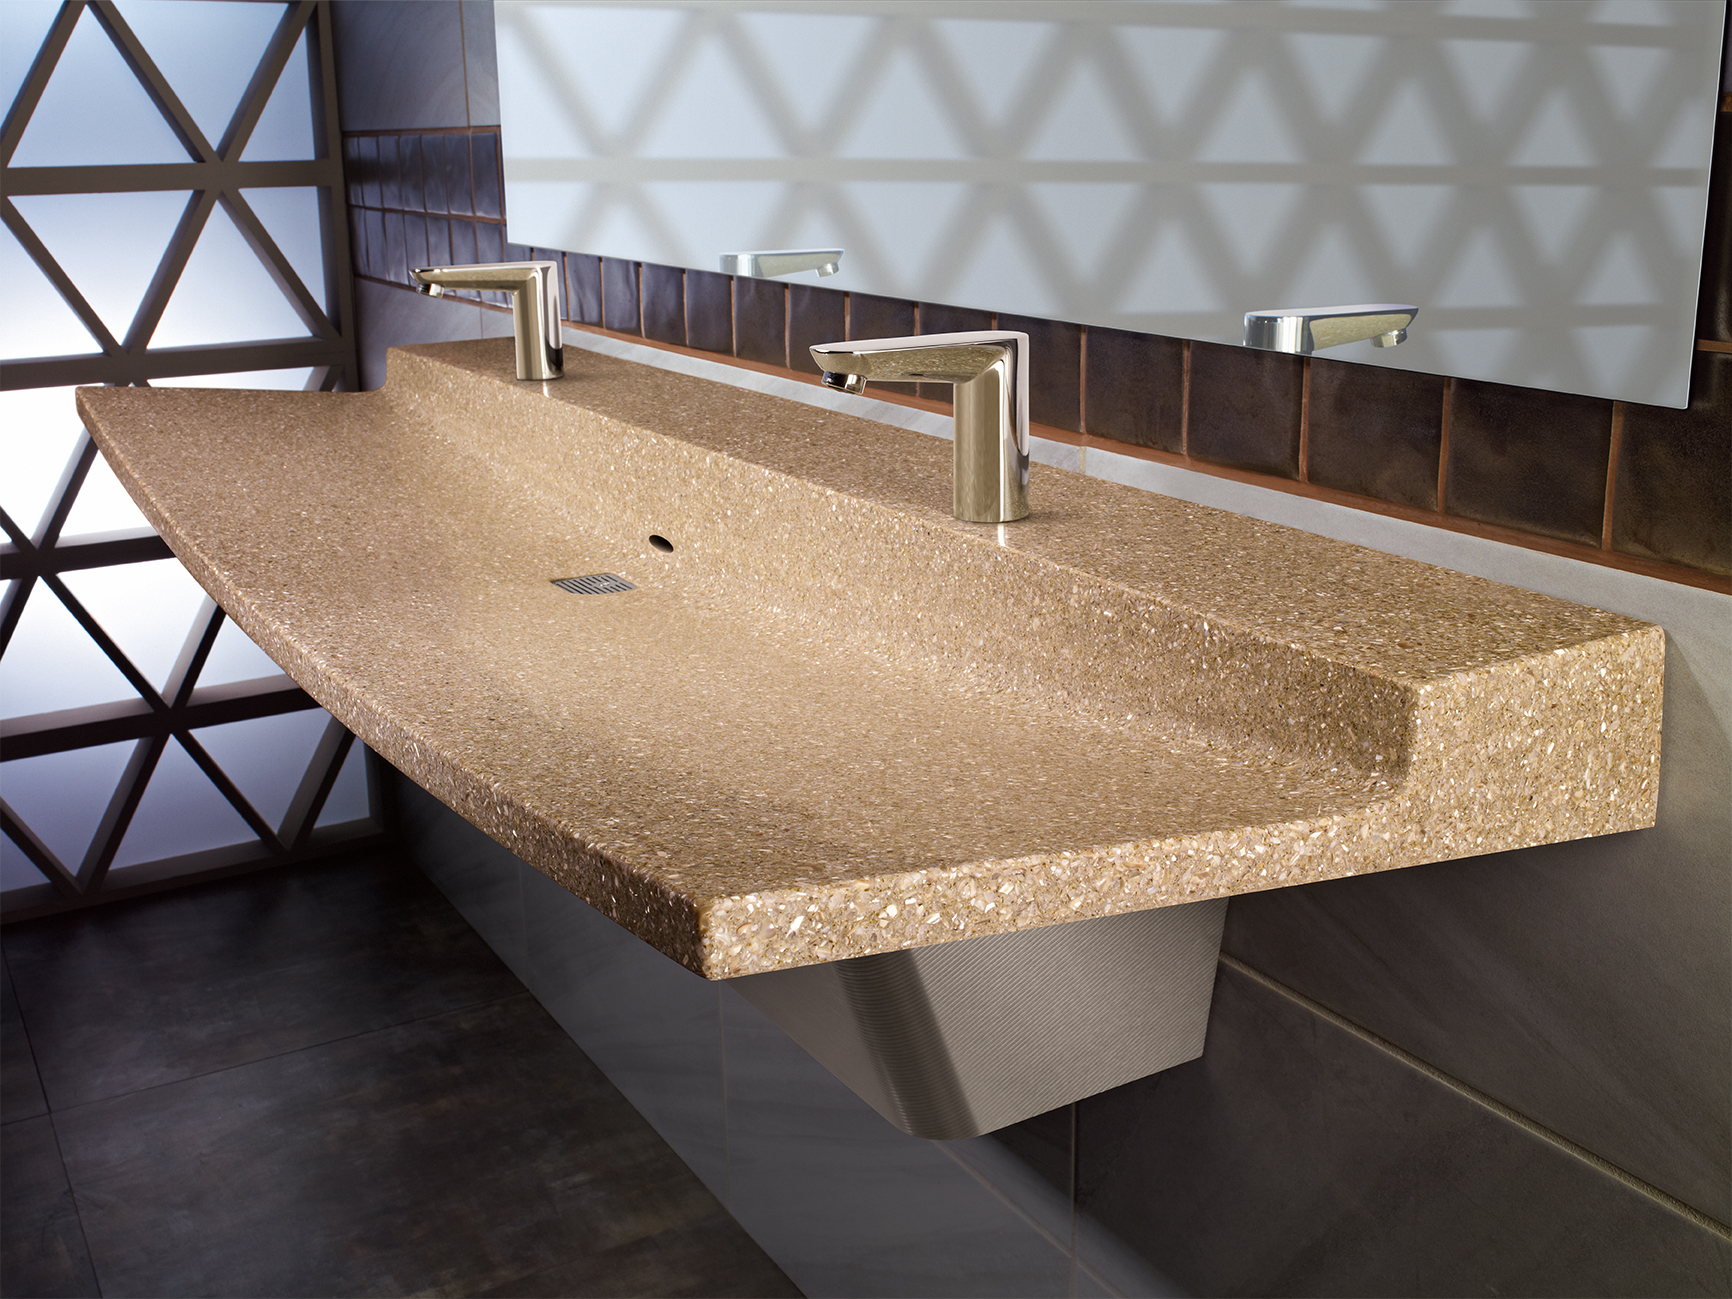 Commercial Bathroom Sink Made Of Natural Quartz Surface